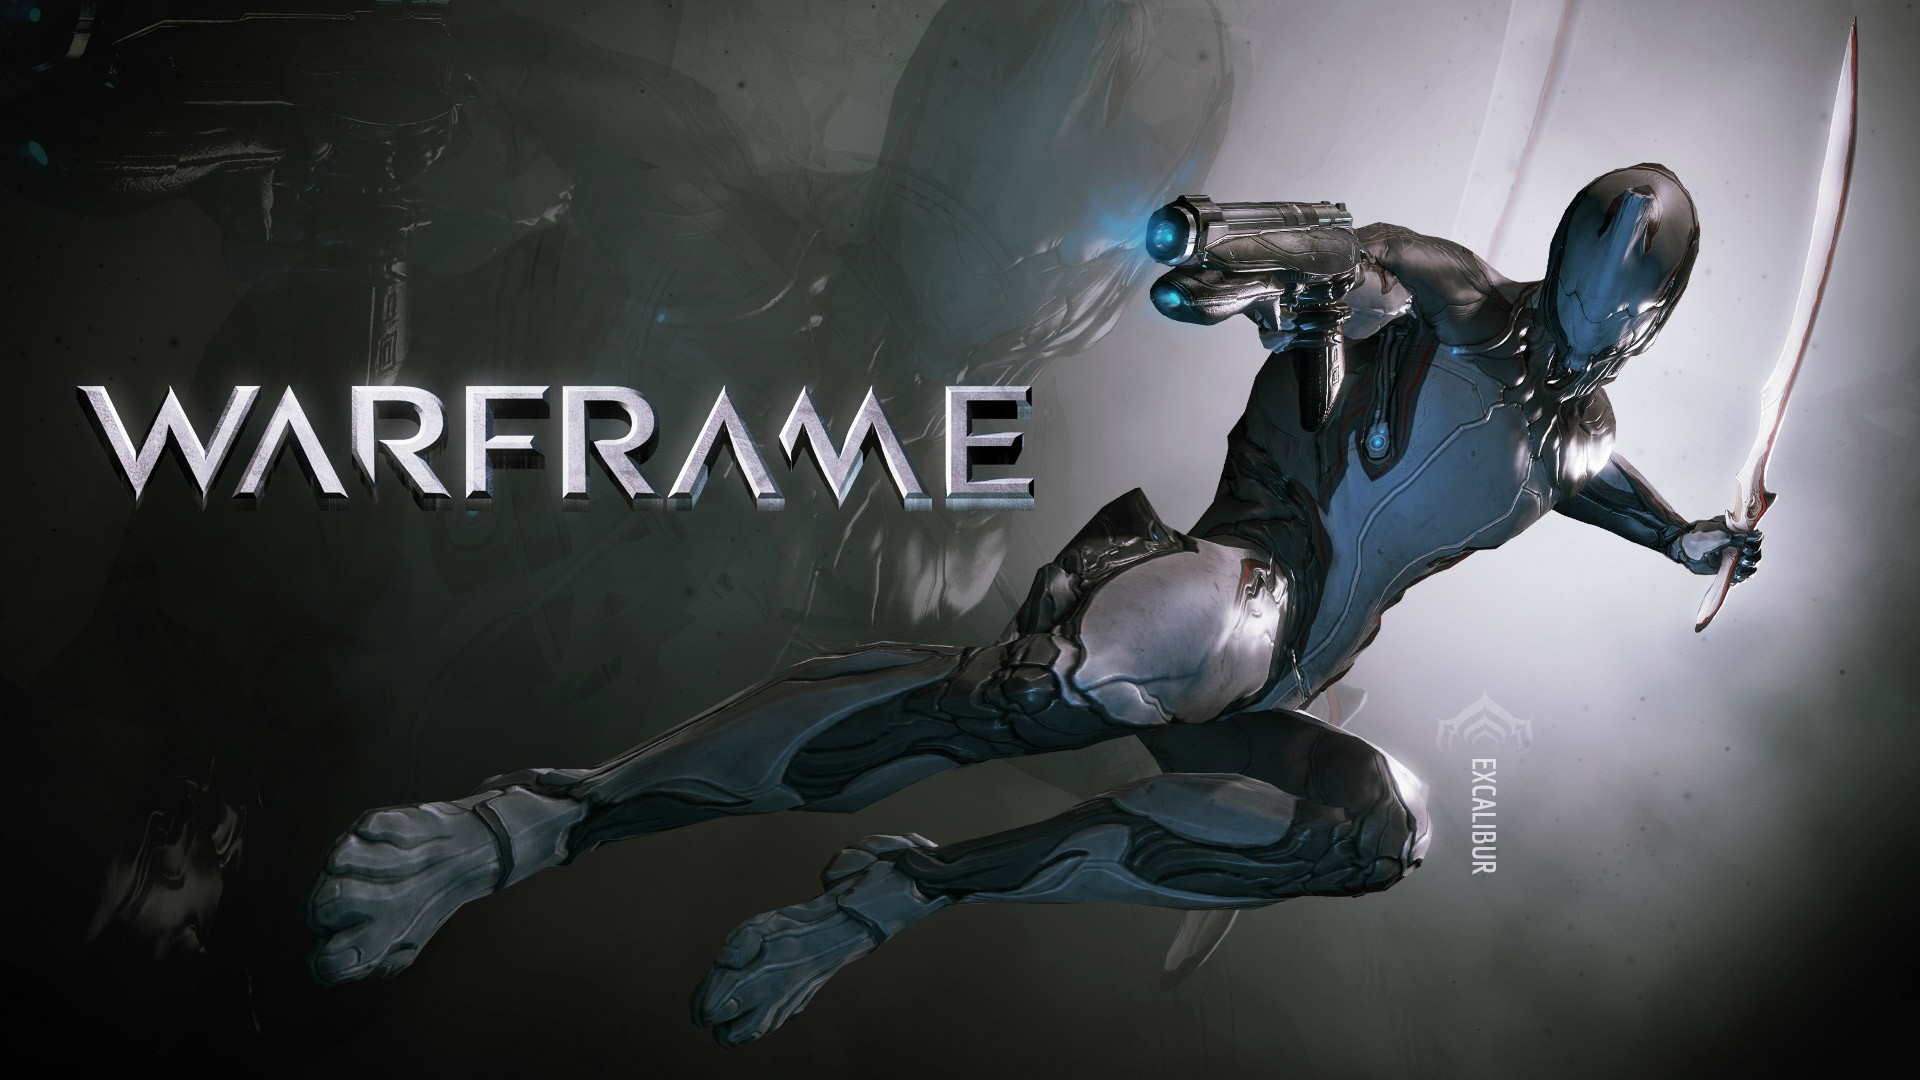 Excalibur-Warframe-Steam-Trading-Card-×-wallpaper-wp5206266